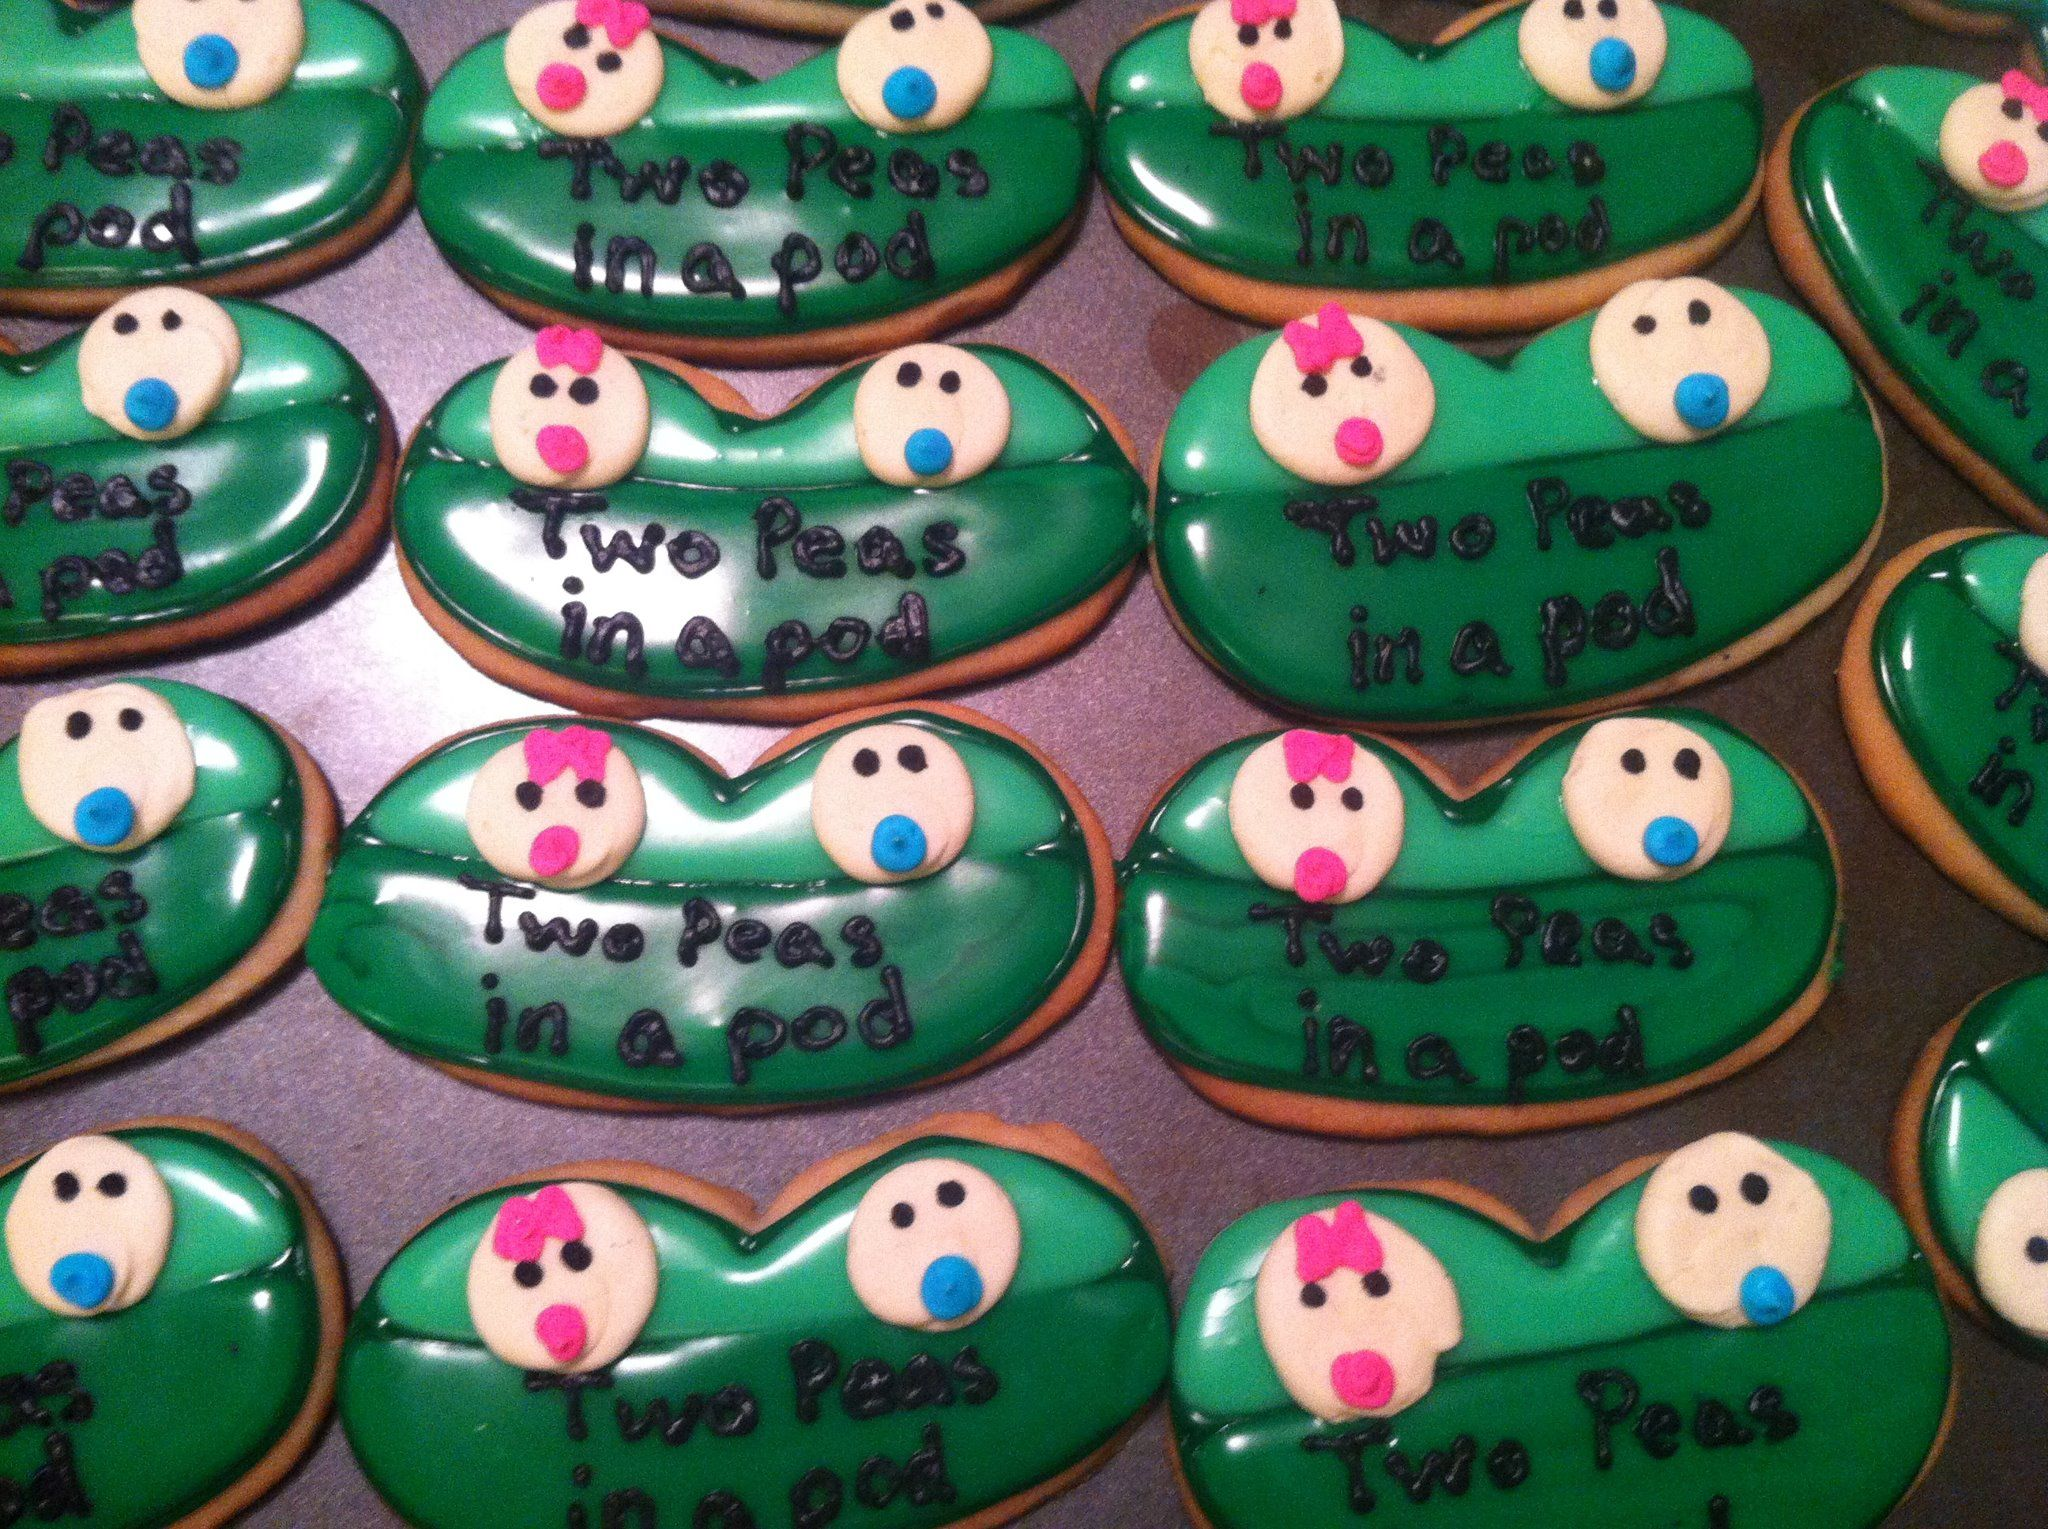 Two Peas in a Pod cookies